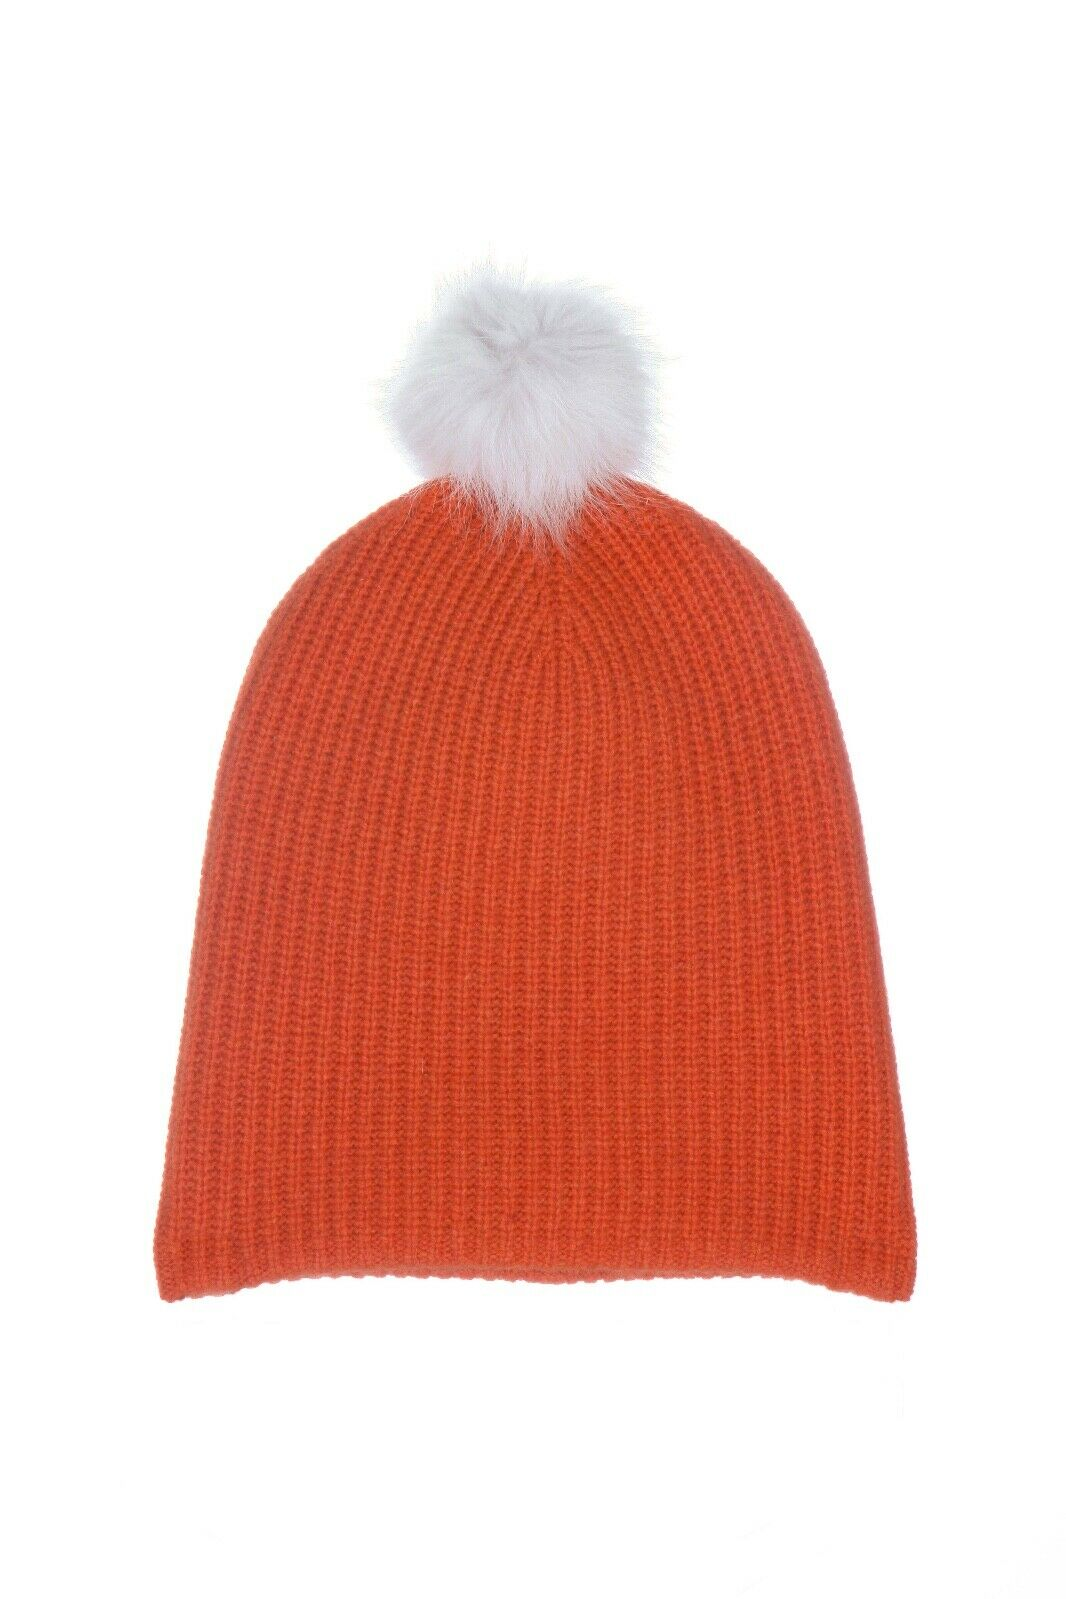 RAG & BONE Cashmere Wool Blend Knit Beanie Hat With White Lamb Fur Pom